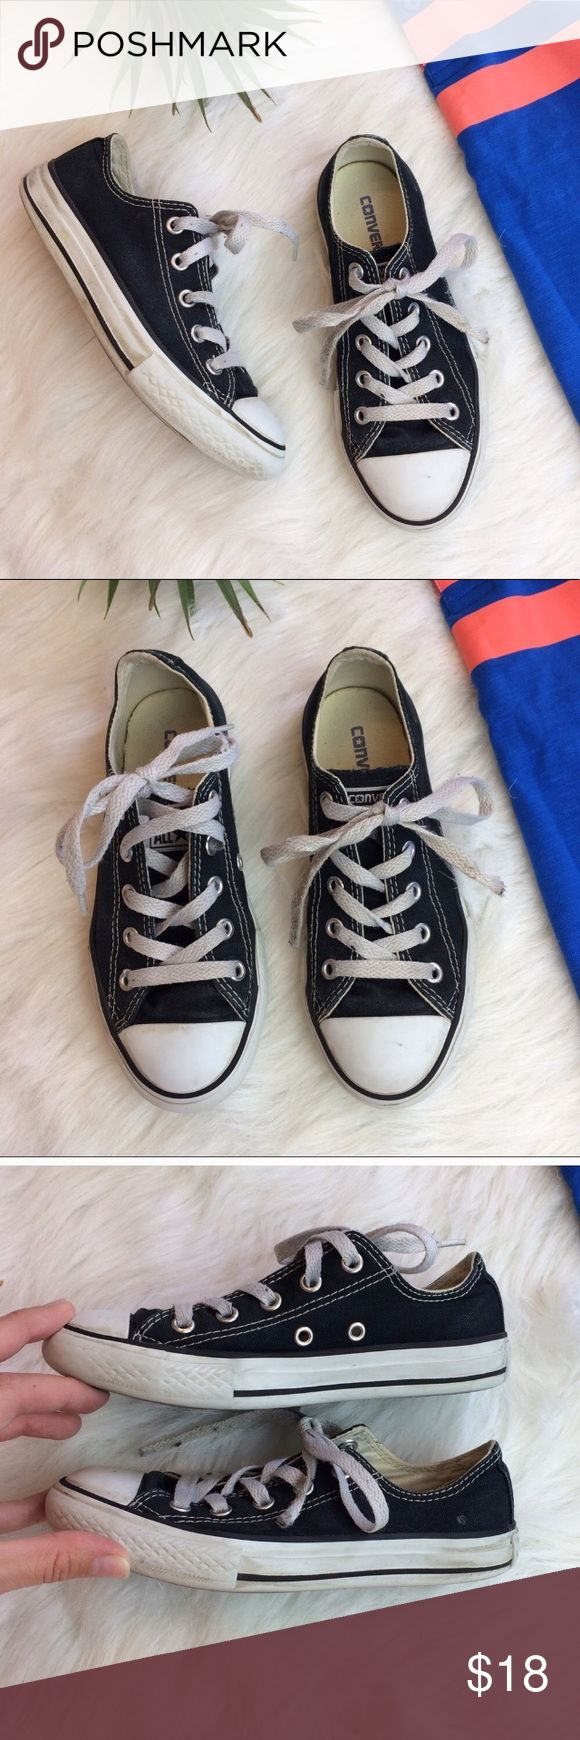 Kids Black All Star Converse Shoes Size 13 Kids size little boys US 13 black all star Converse Shoes. Could use a fresh pair of laces but are in excellent condition besides that. Converse Shoes Sneakers